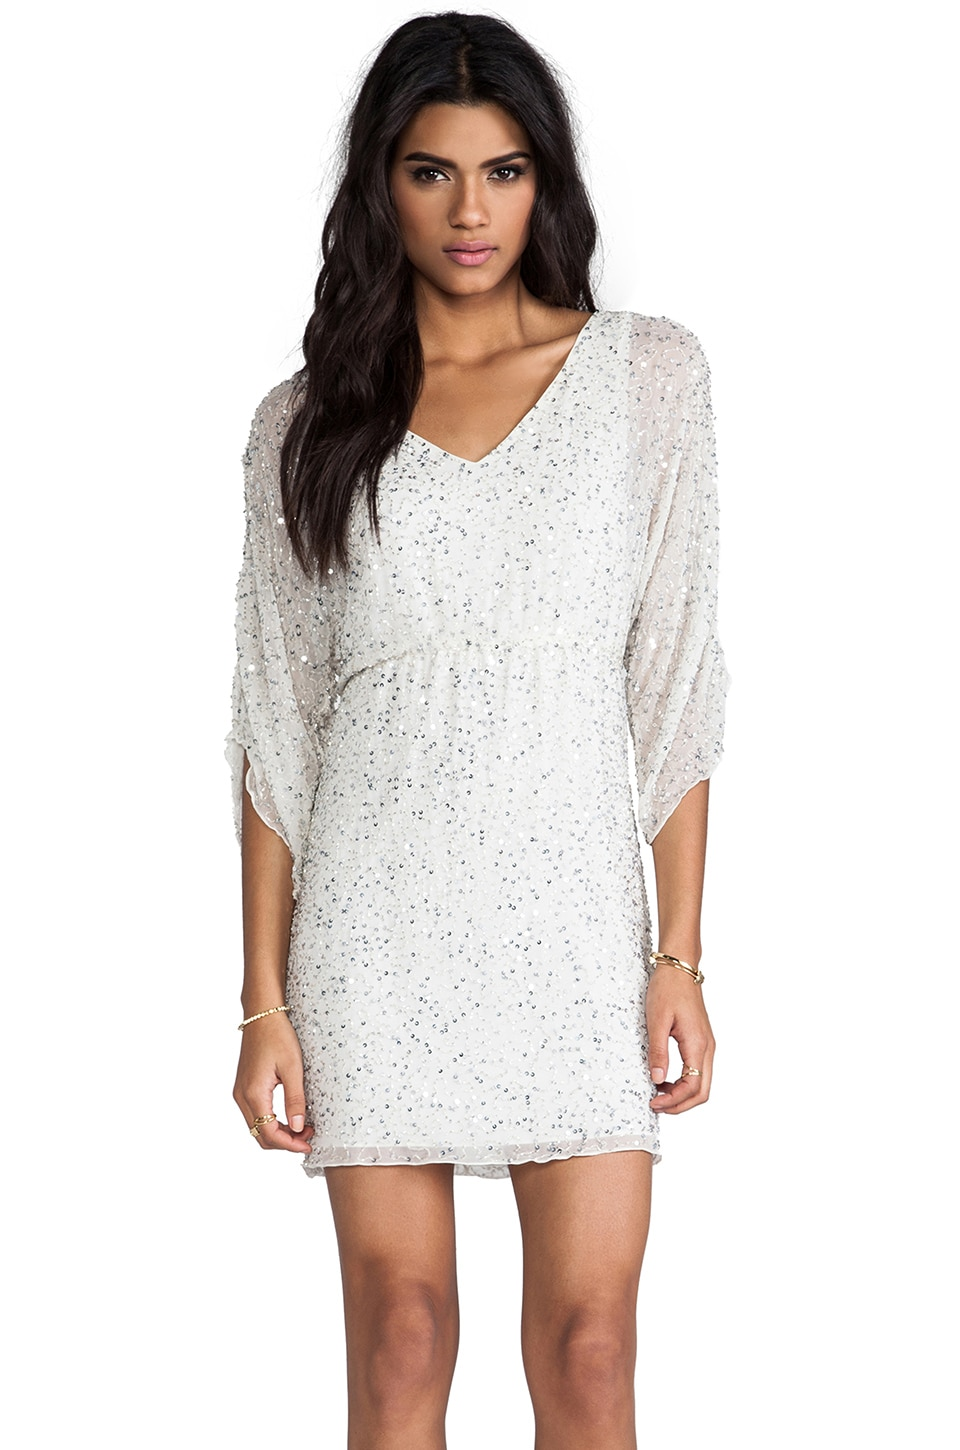 Alice + Olivia Olympia Embellished Tunic Dress in White Multi